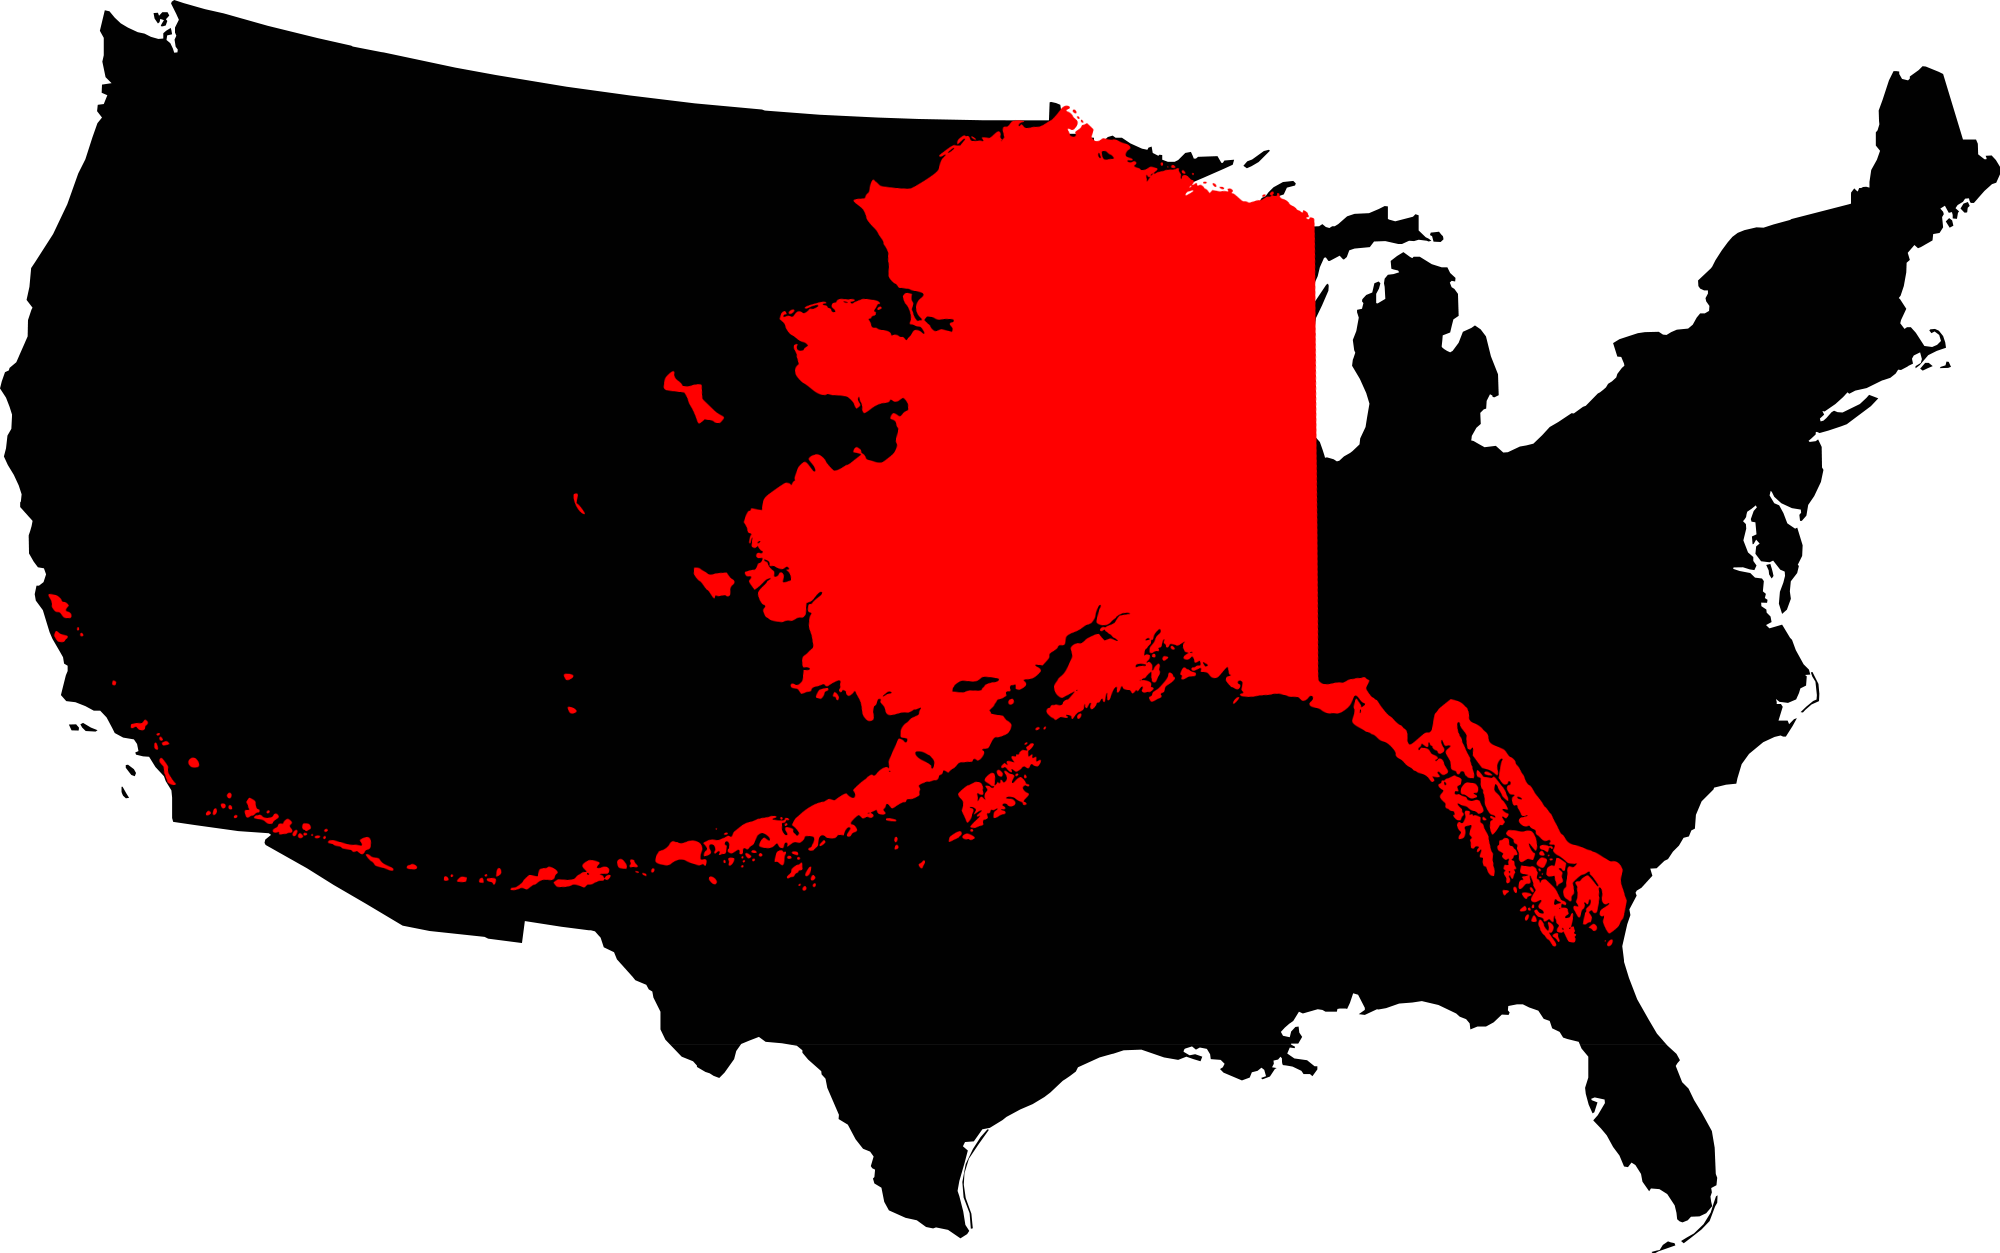 File:Alaska compared to the United States Map.png   Wikimedia Commons